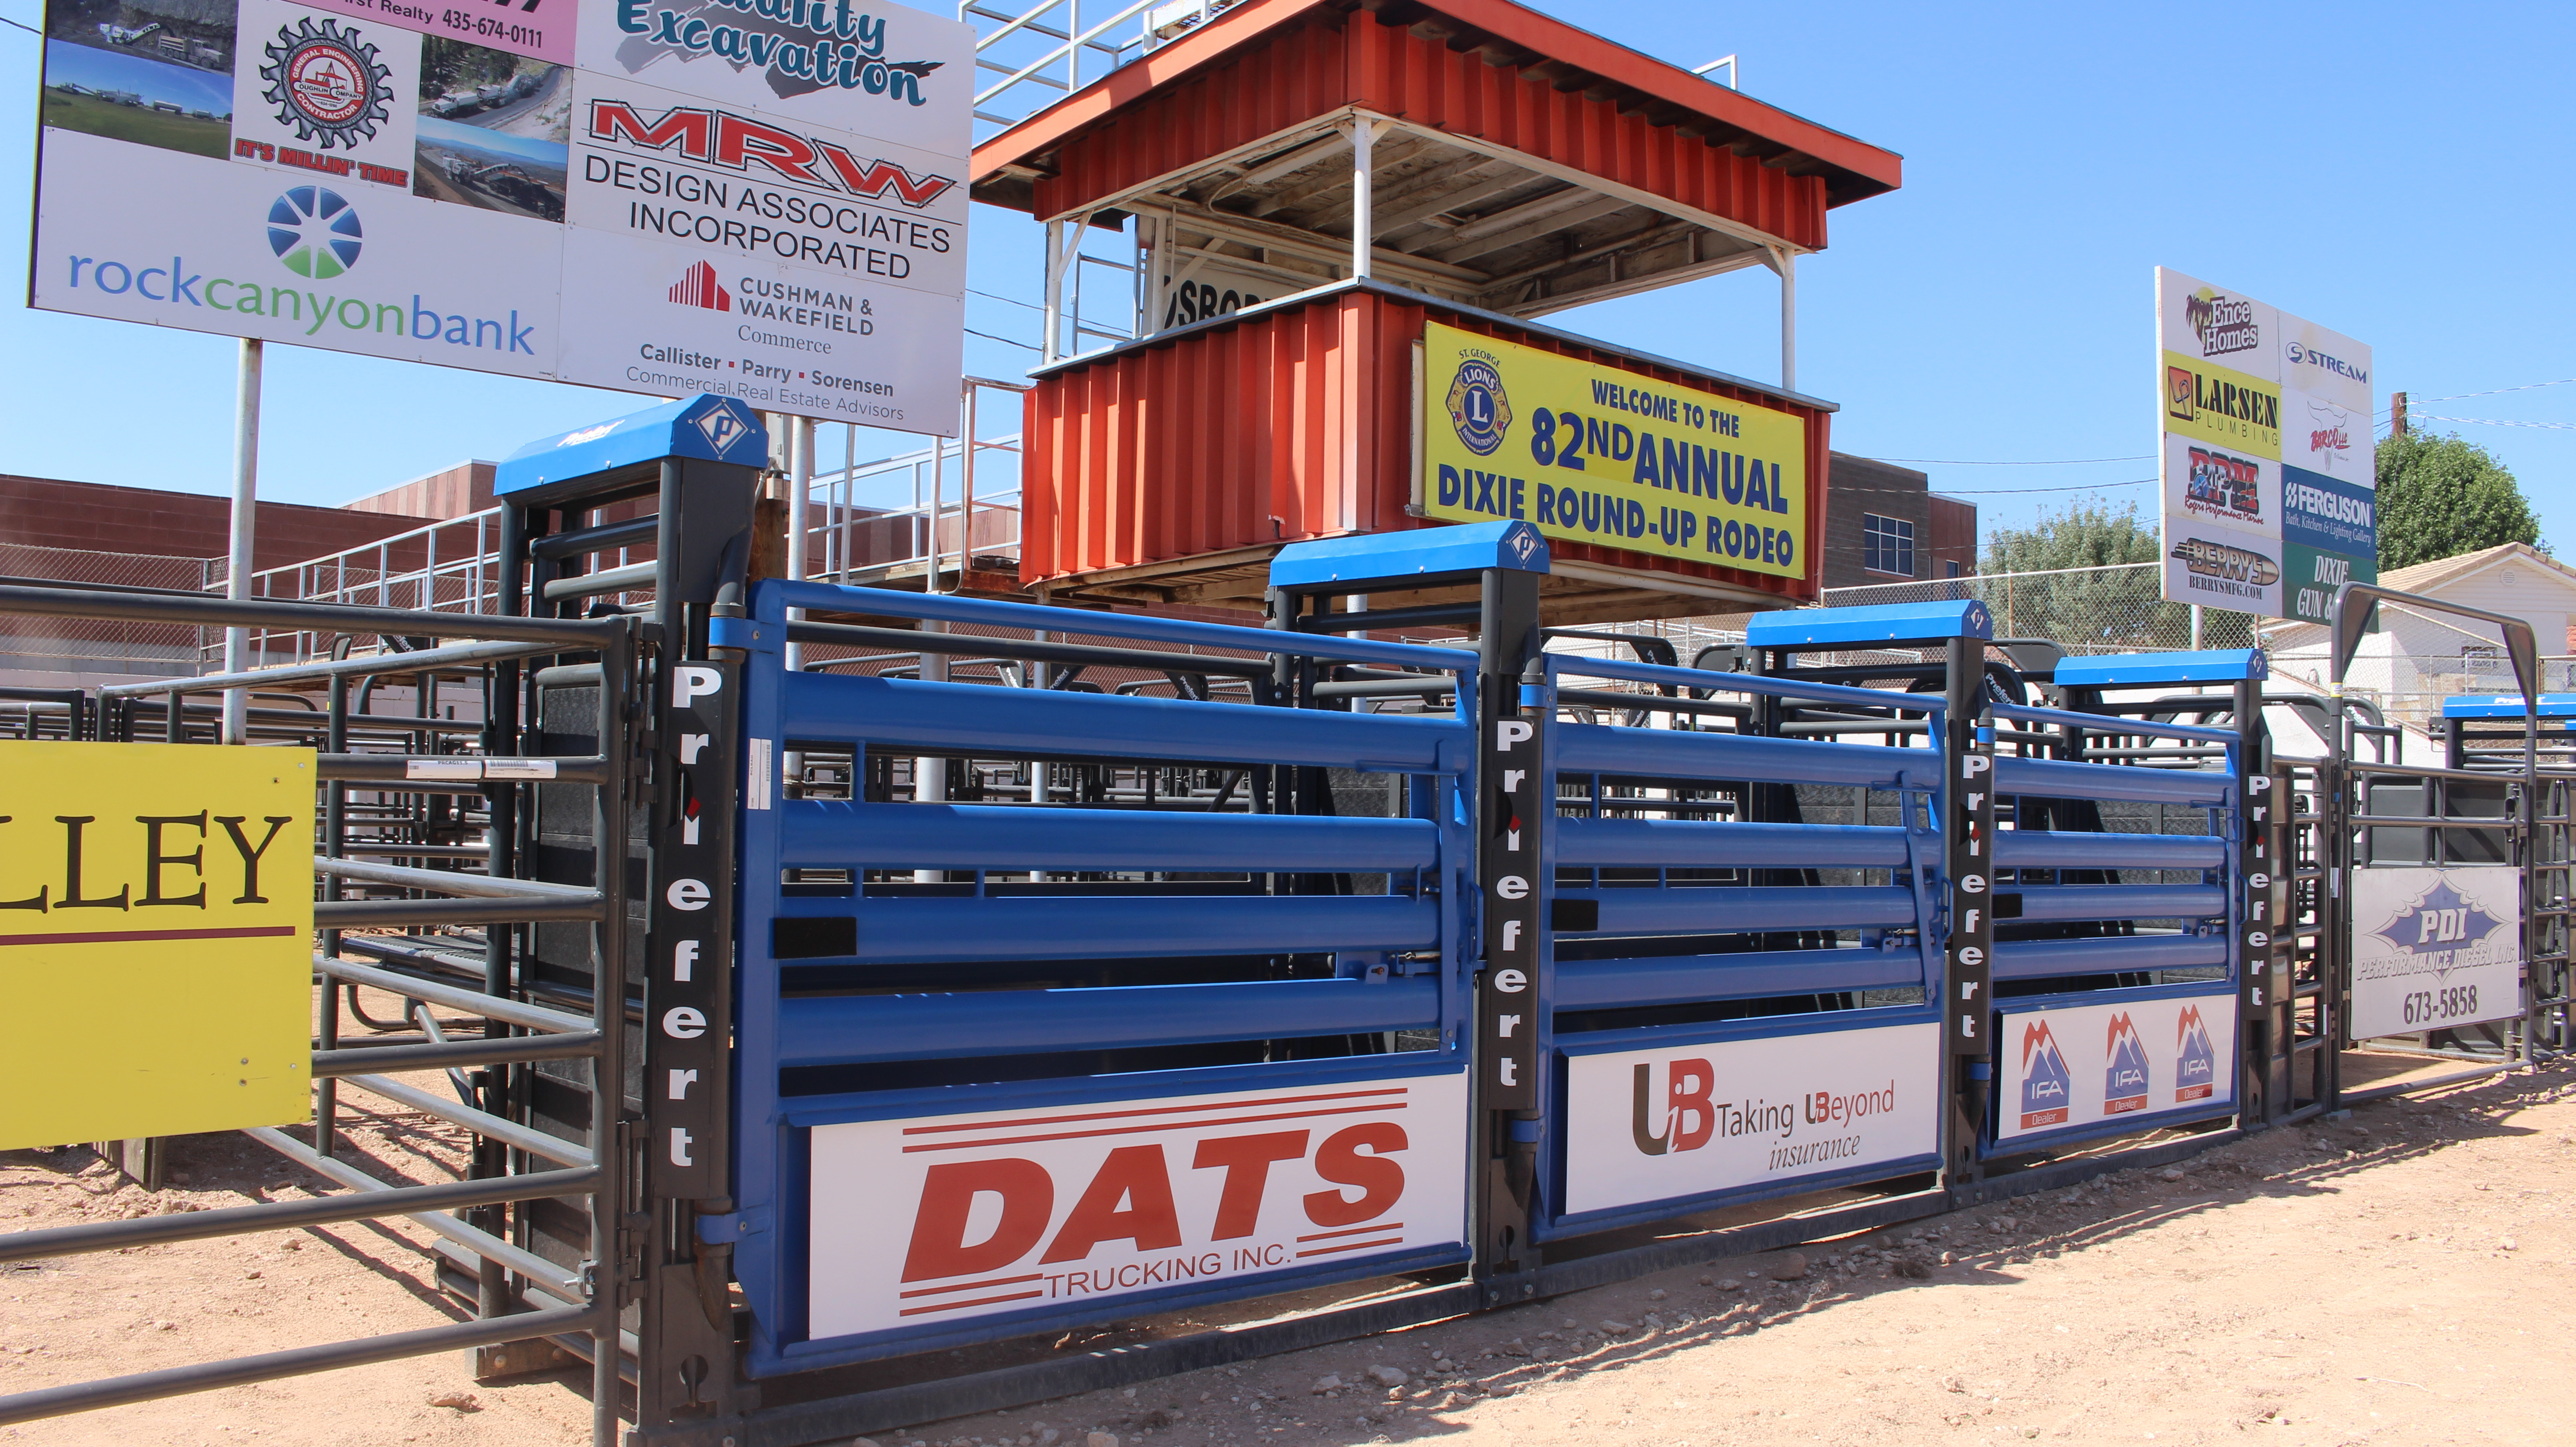 The historic Dixie Sunbowl received several upgrades ahead of the weekend's Dixie Roundup Rodeo including improvements to the chutes, St George, Utah, September 12, 2016 | Photo by Joseph Witham, St George News.